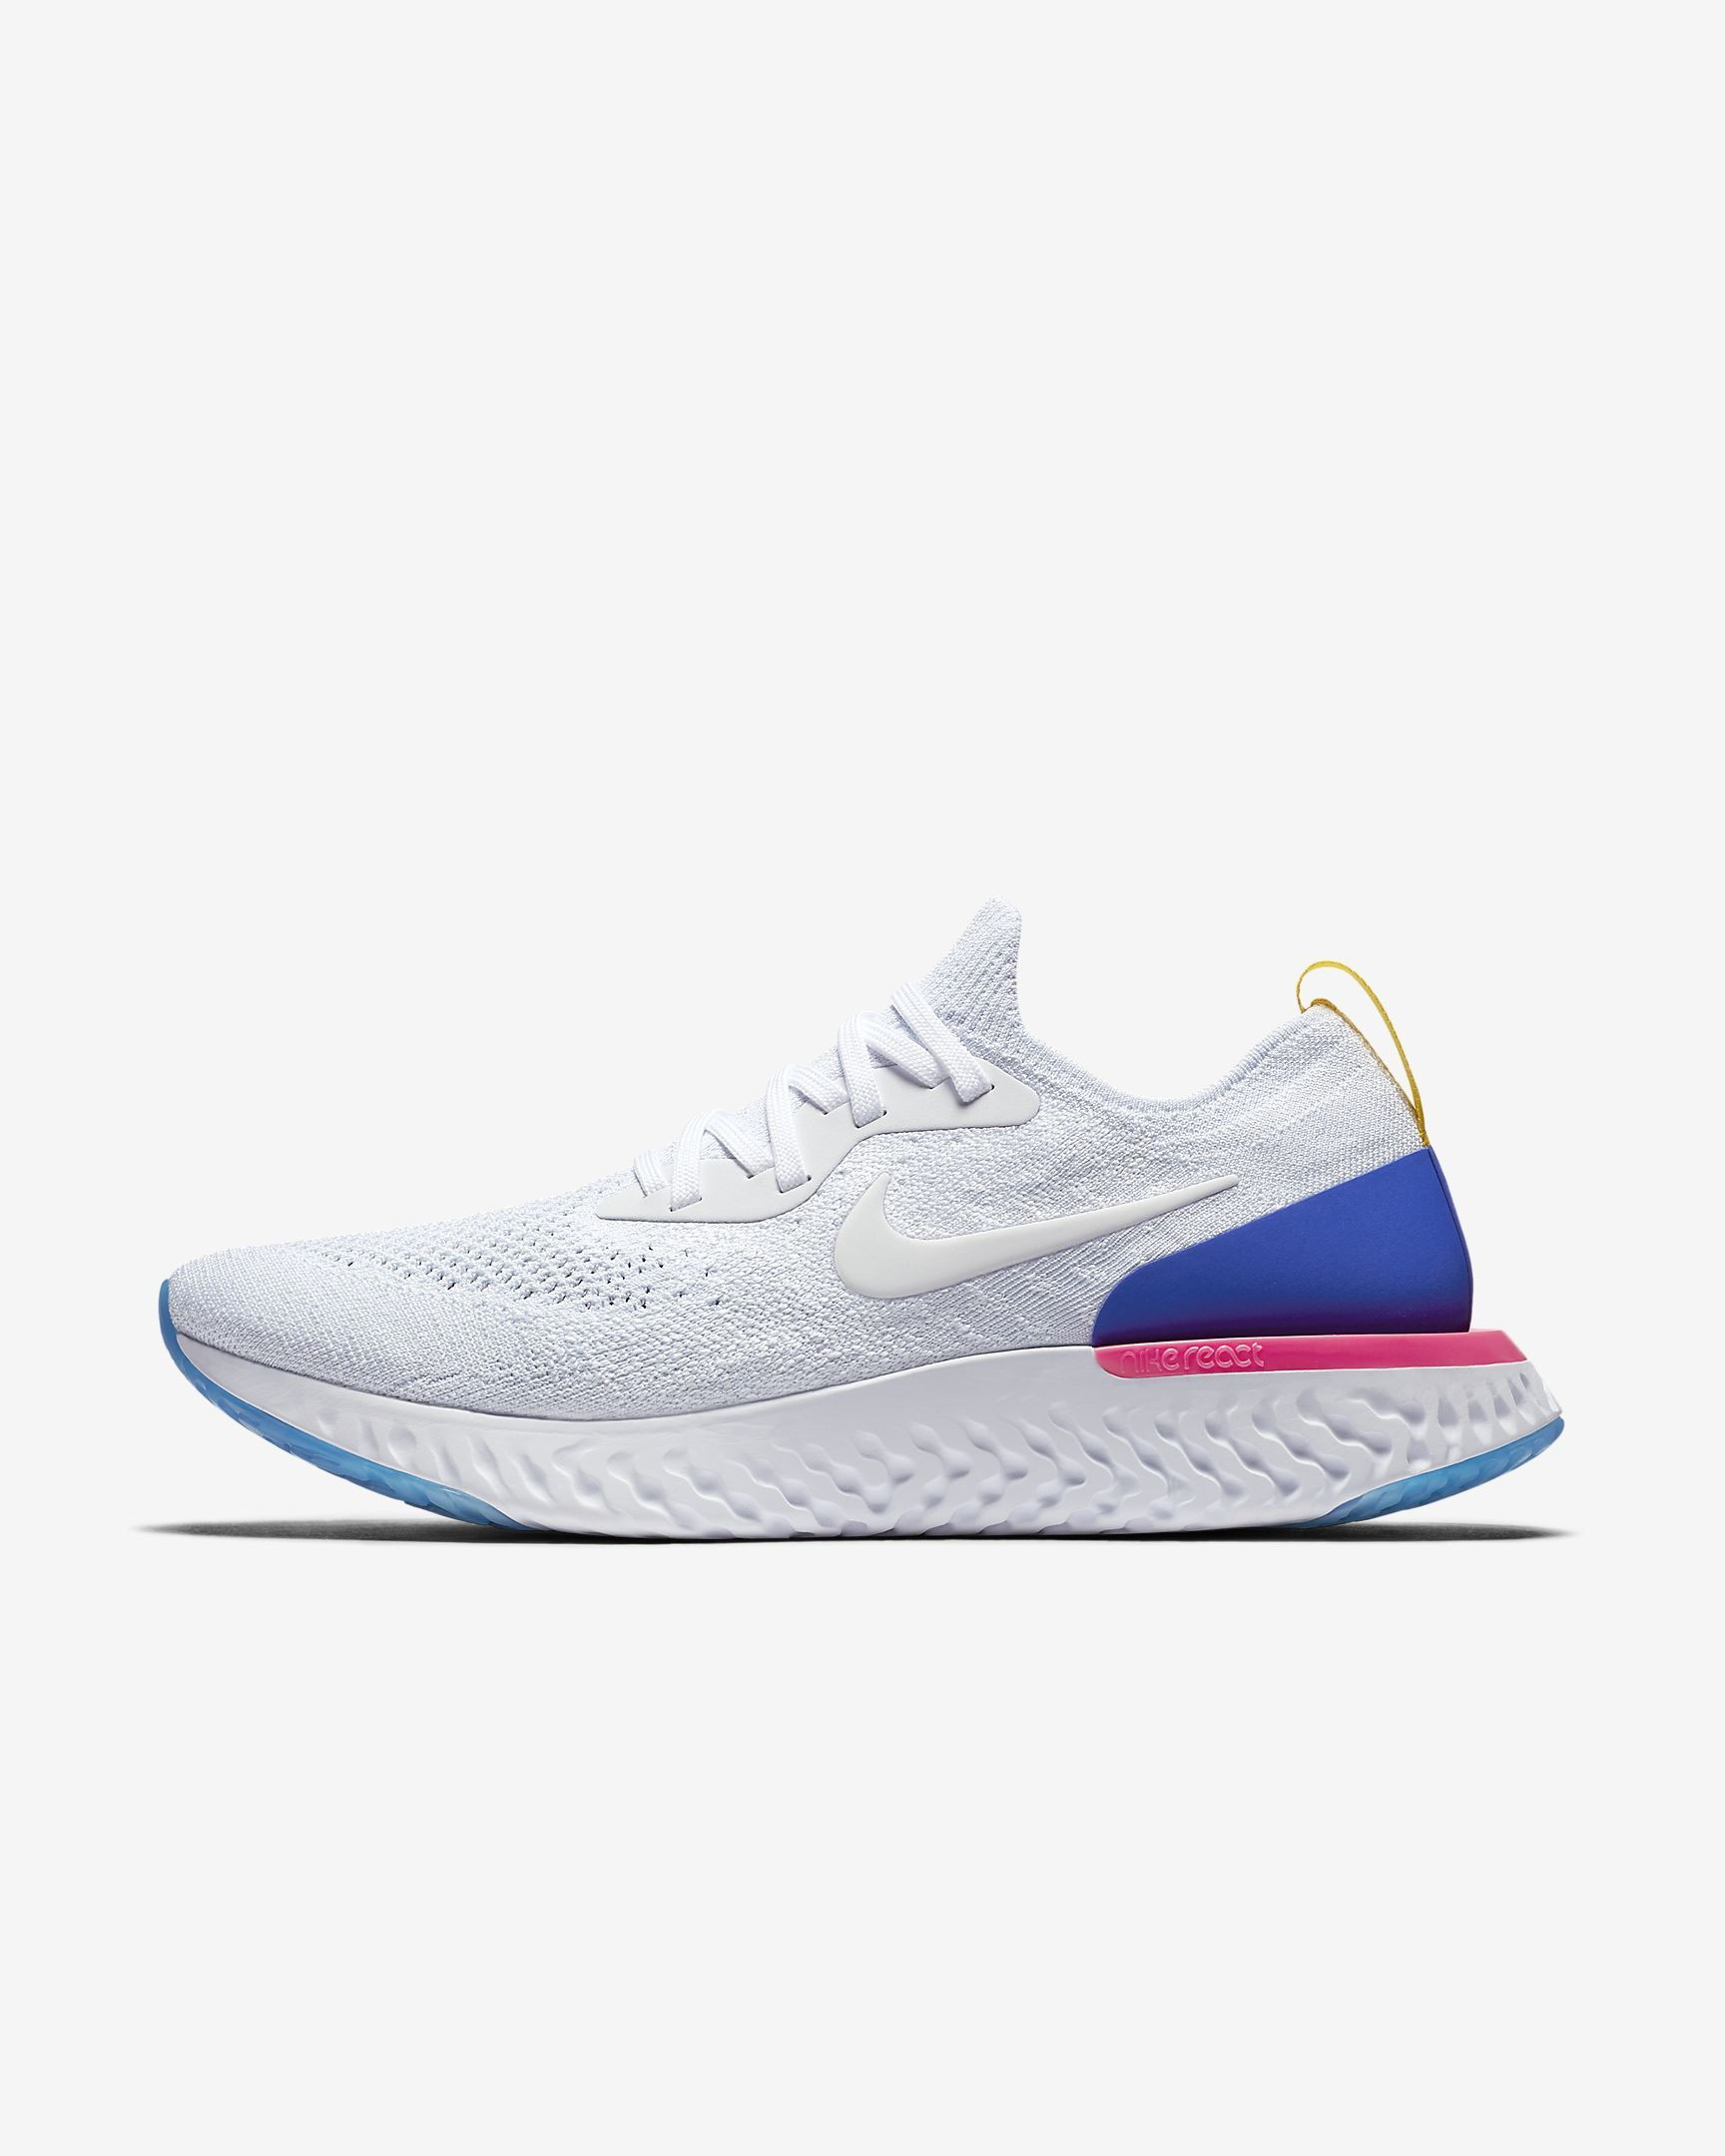 3b41e5b0a14 Cheapest And Latest Authentic Unisex Couple Nike Epic React Flyknit Mens  Running Shoe White Racer Blue Pink Blast White AQ0067-101